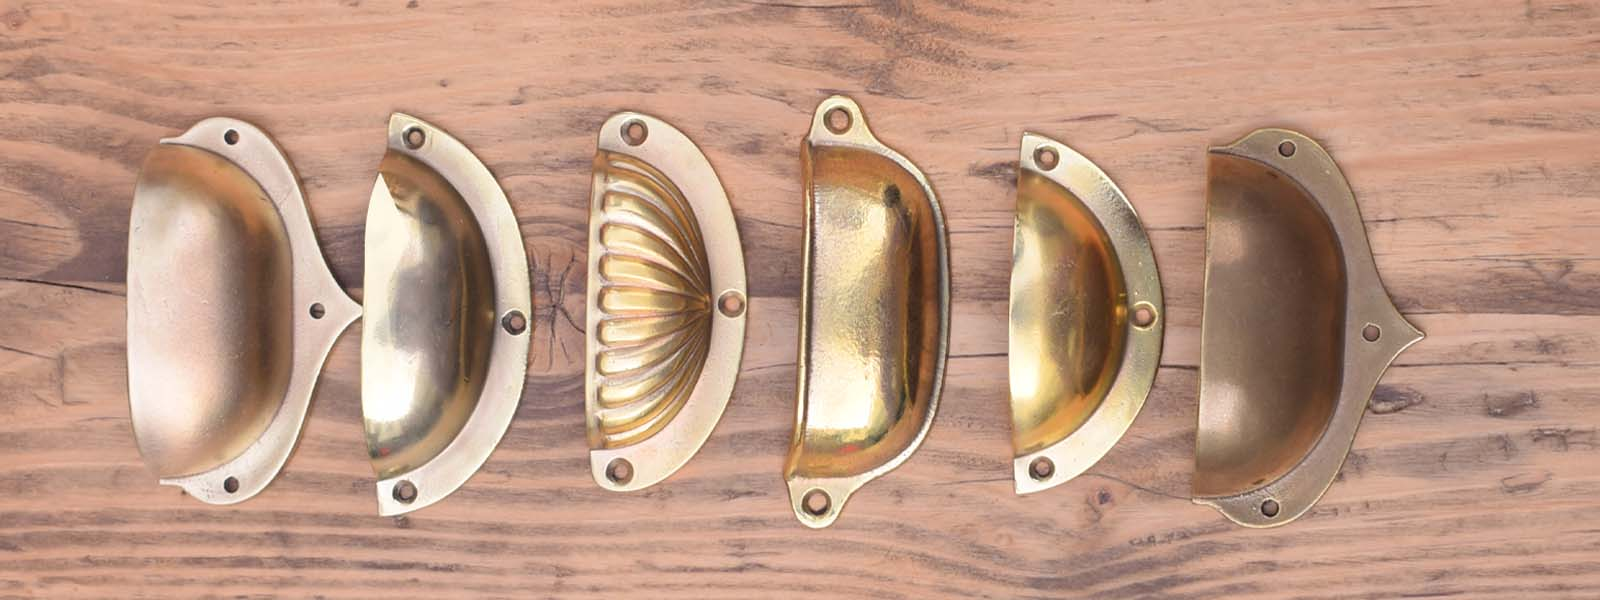 cup handles, finger pulls, brass cabinet pulls, brass drawer pulls on wood background